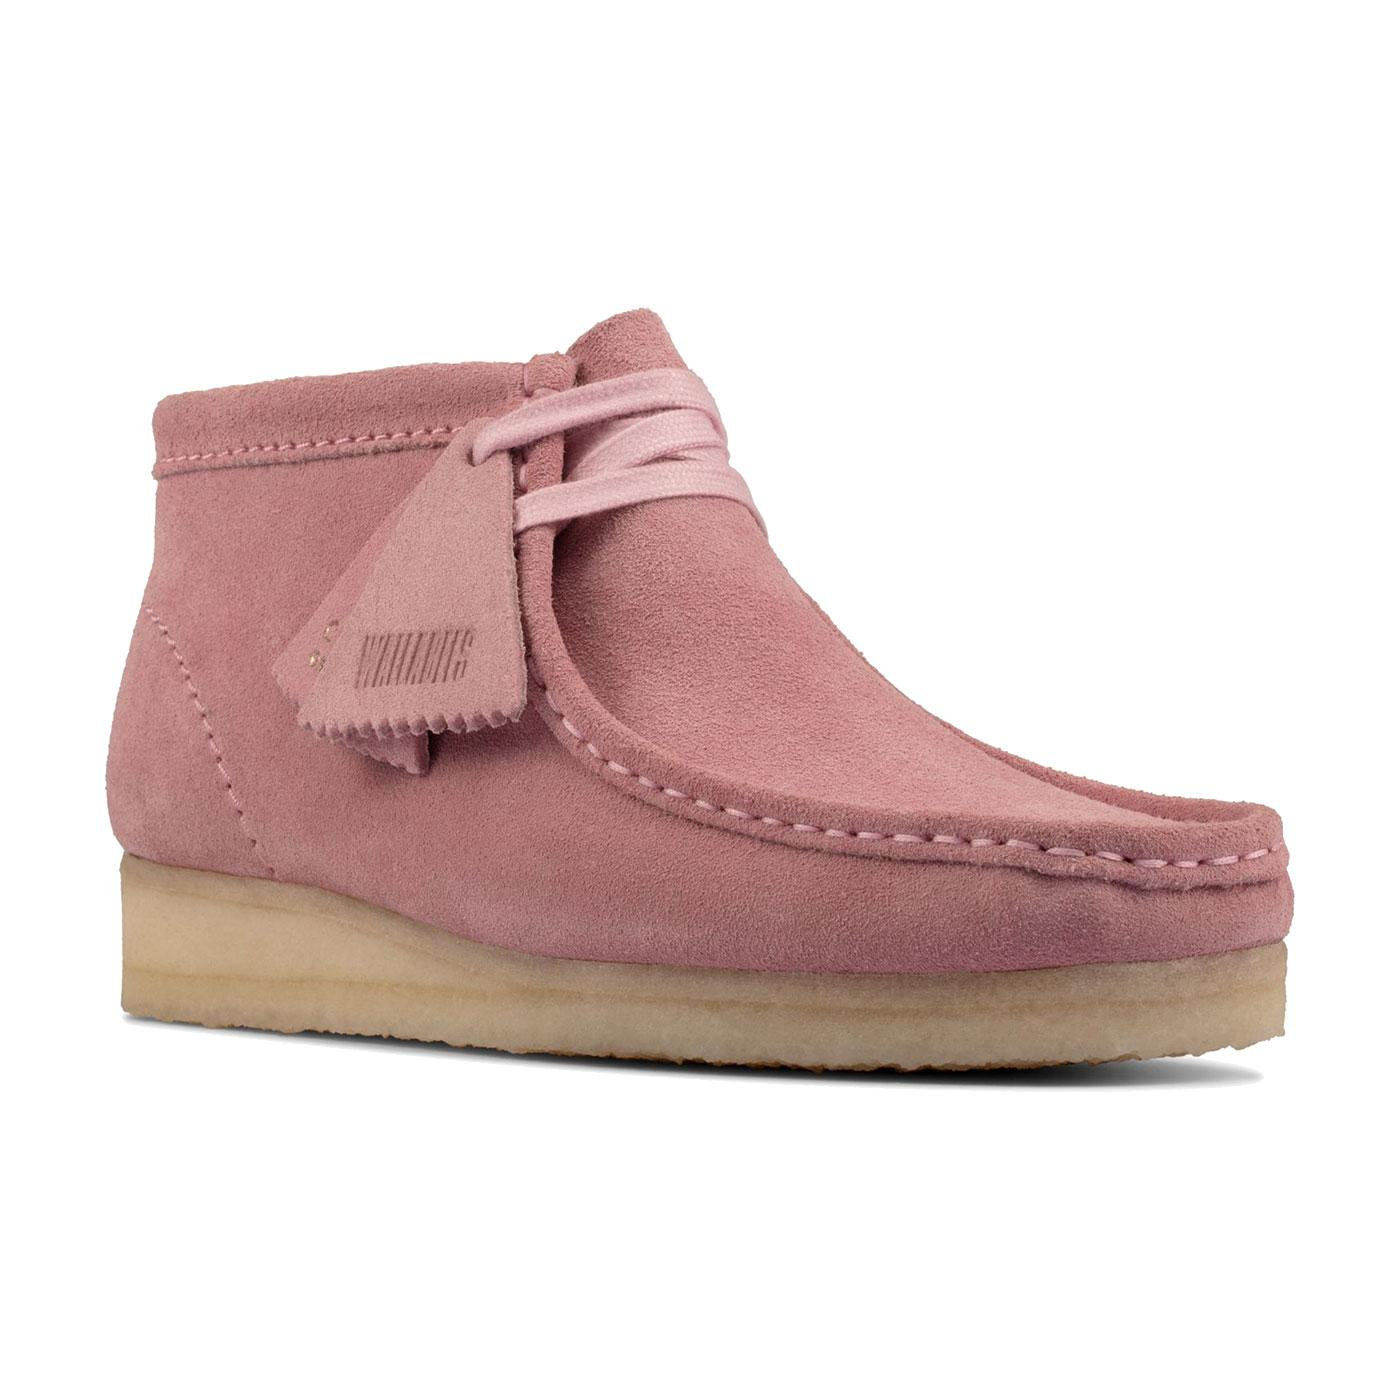 Wallabee Boots Suede CLARKS ORIGINALS Womens Boots